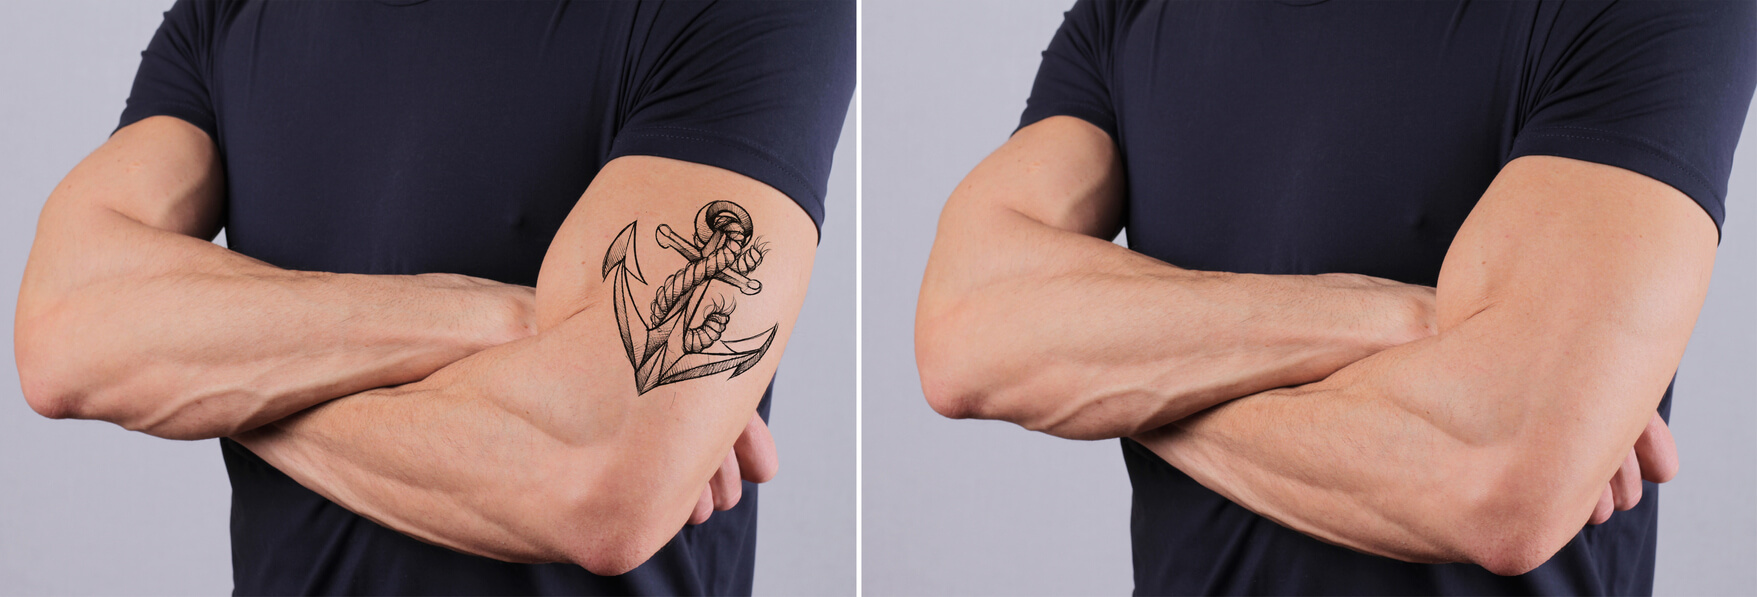 How Is Your Skin Affected By Laser Tattoo Removal